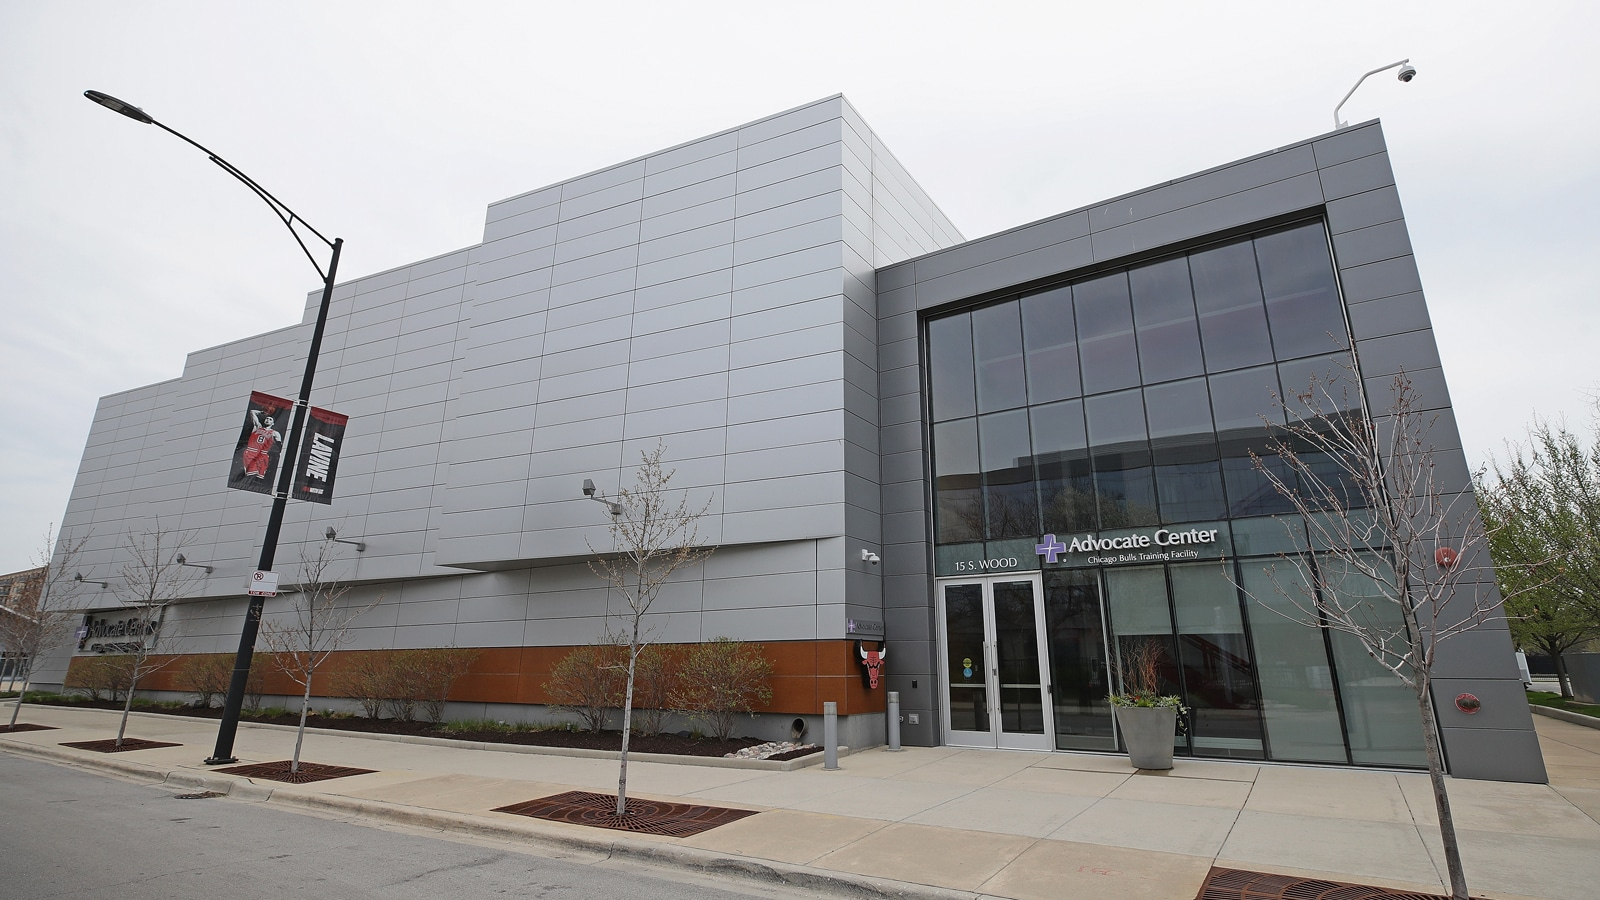 Advocate Center, Chicago Bulls Practice Facility